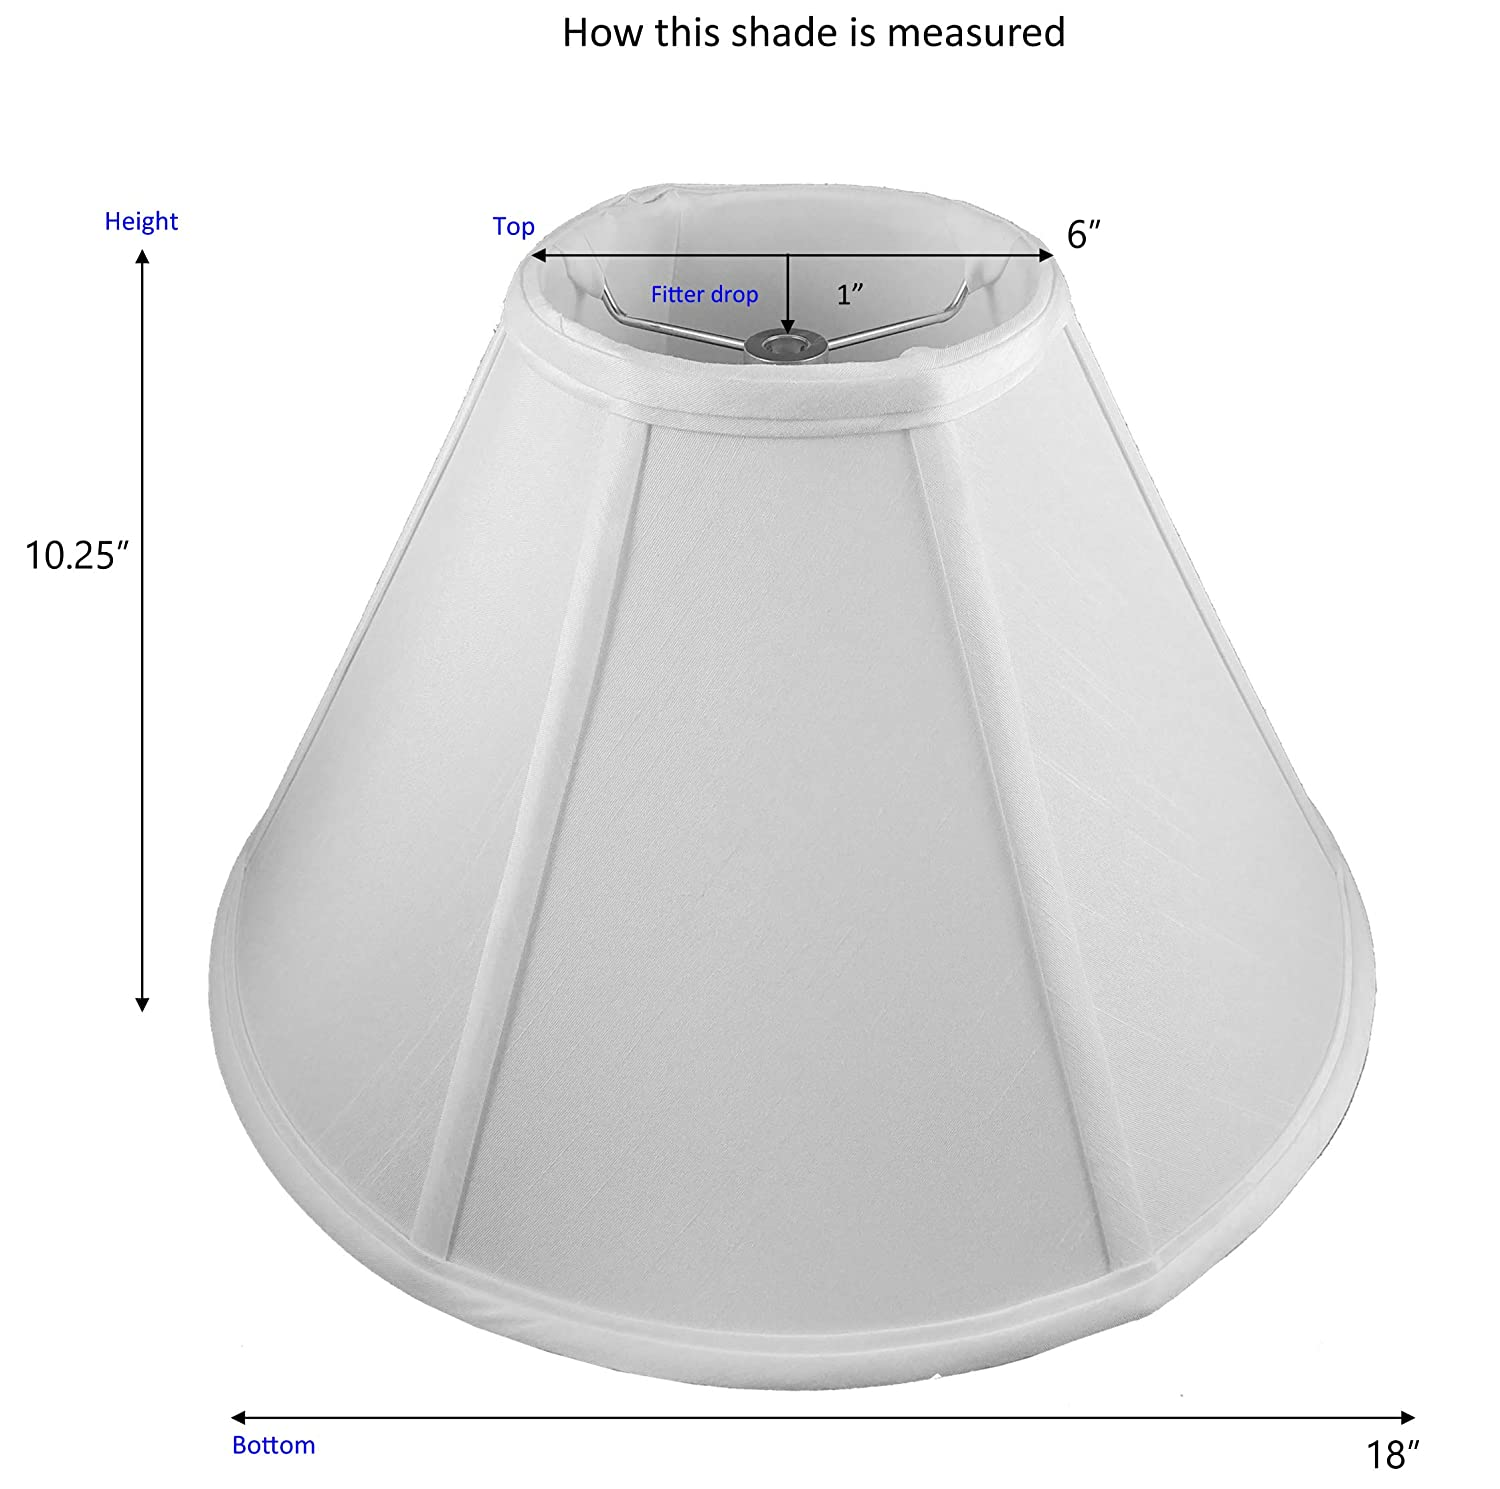 American Pride 6x 18x 11 Round Soft Shantung Tailored Lampshade Croissant